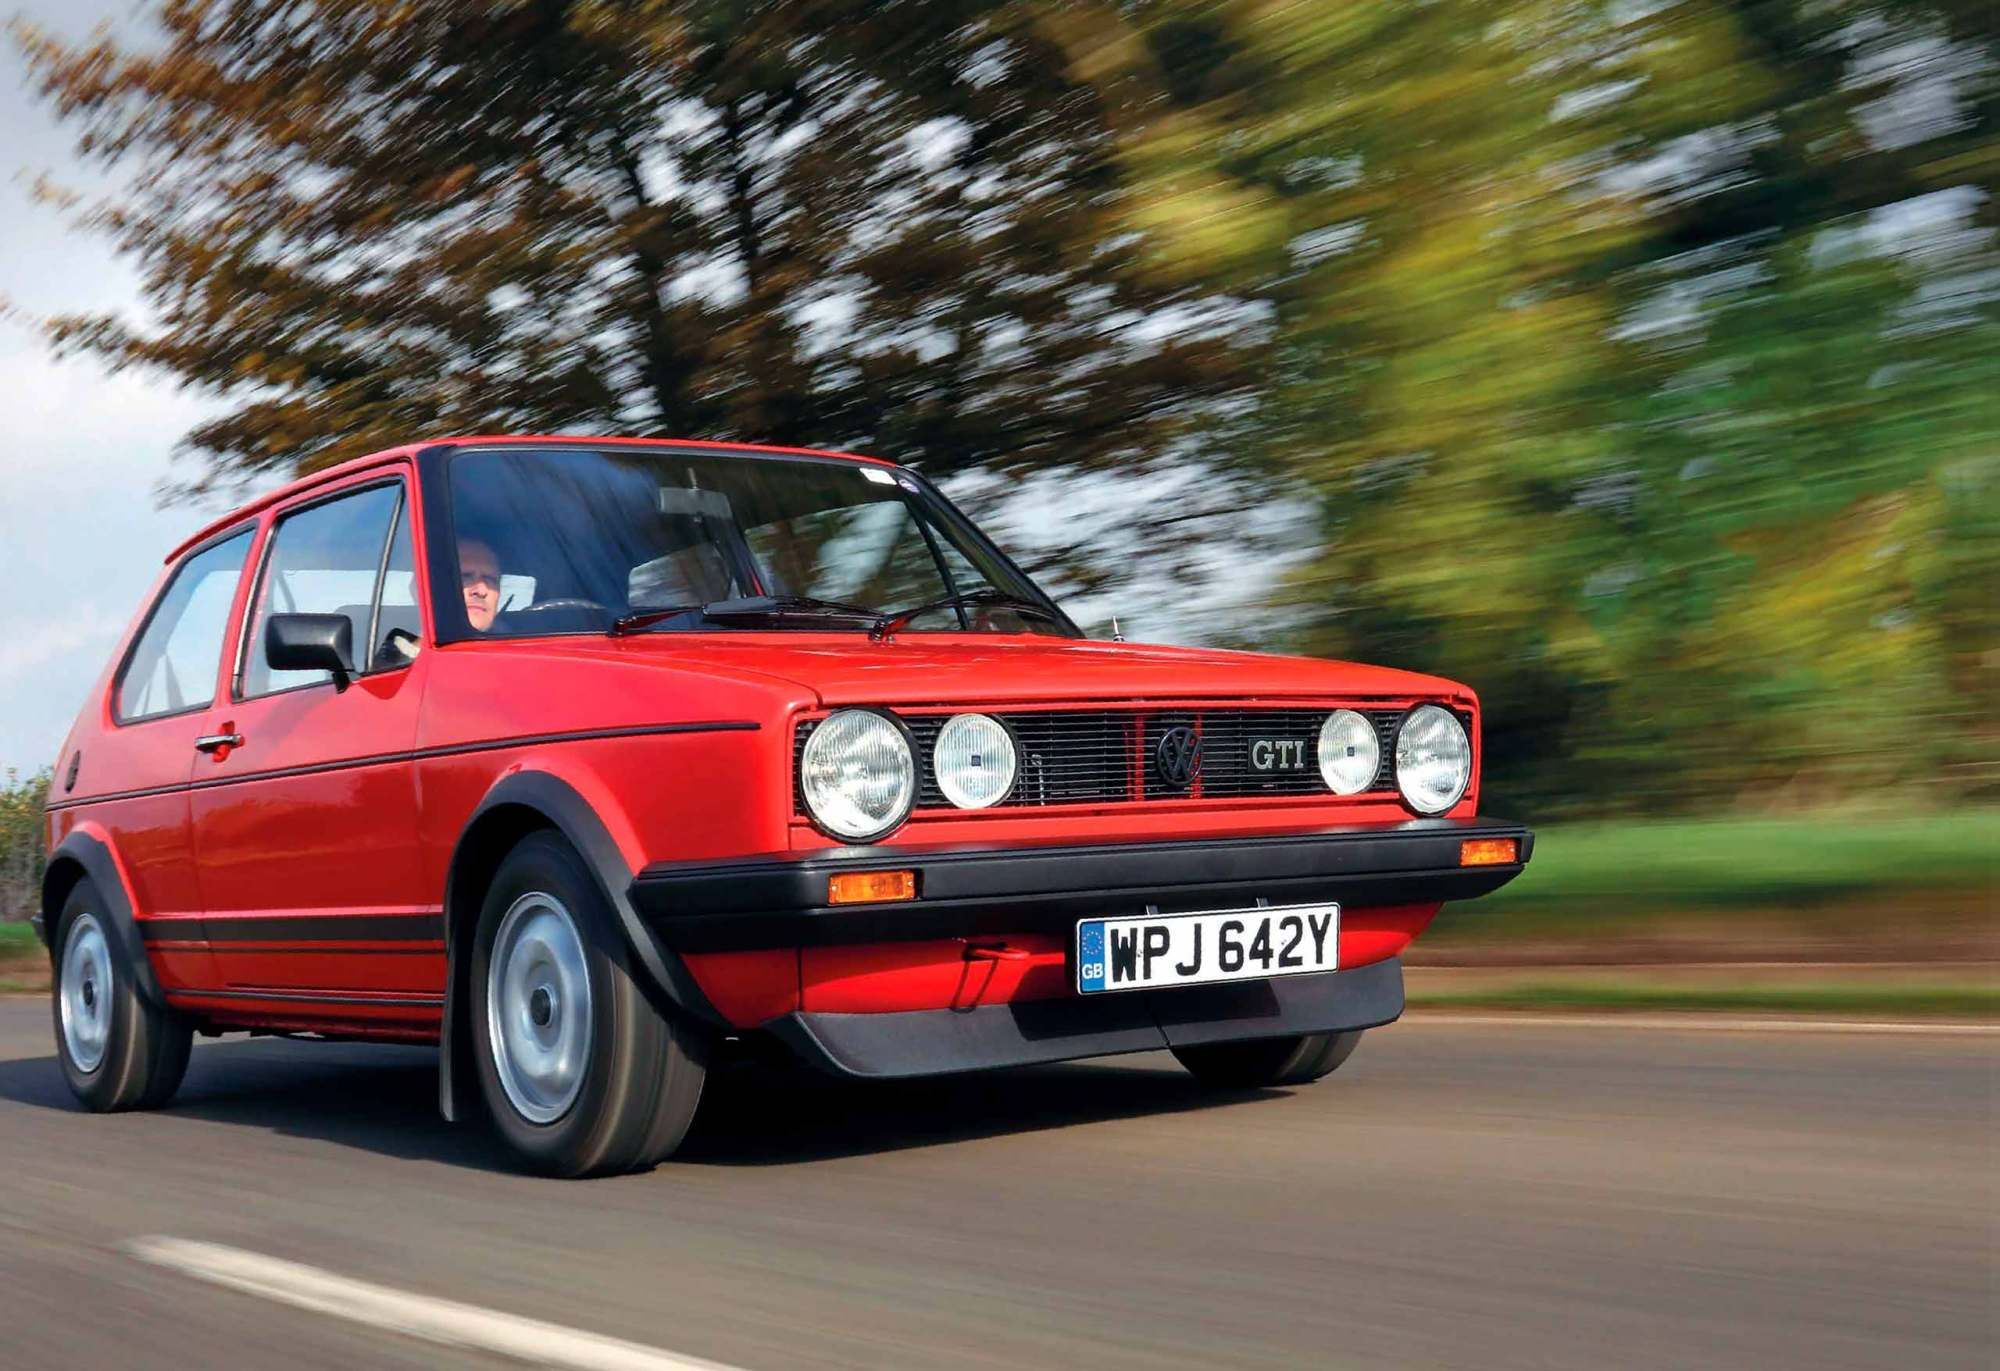 hight resolution of volkswagen golf gti mk1 epic restoration